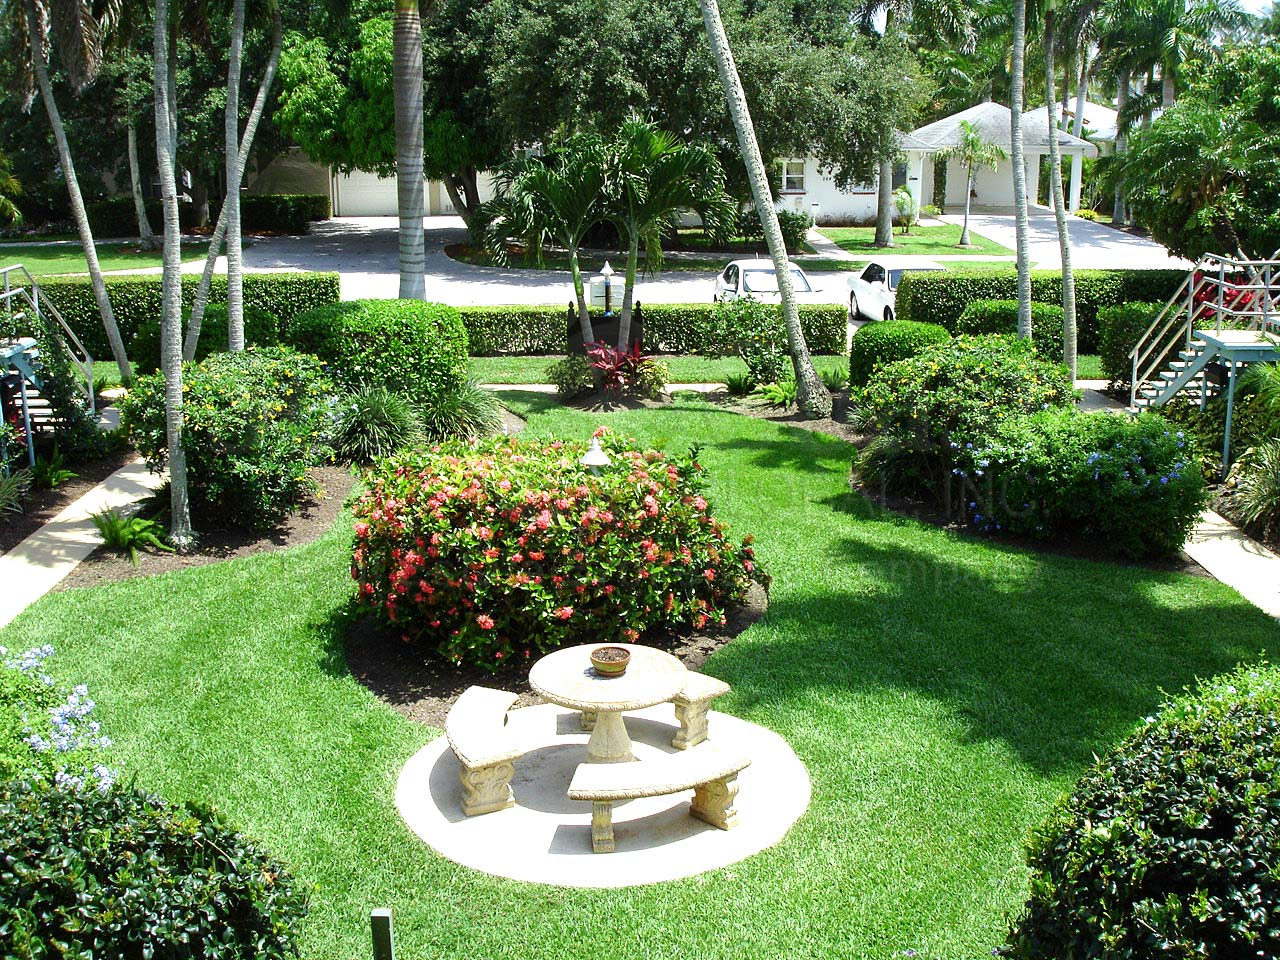 GARDEN COURT at OLDE NAPLES SOUTHWEST Real Estate NAPLES Florida Fla Fl